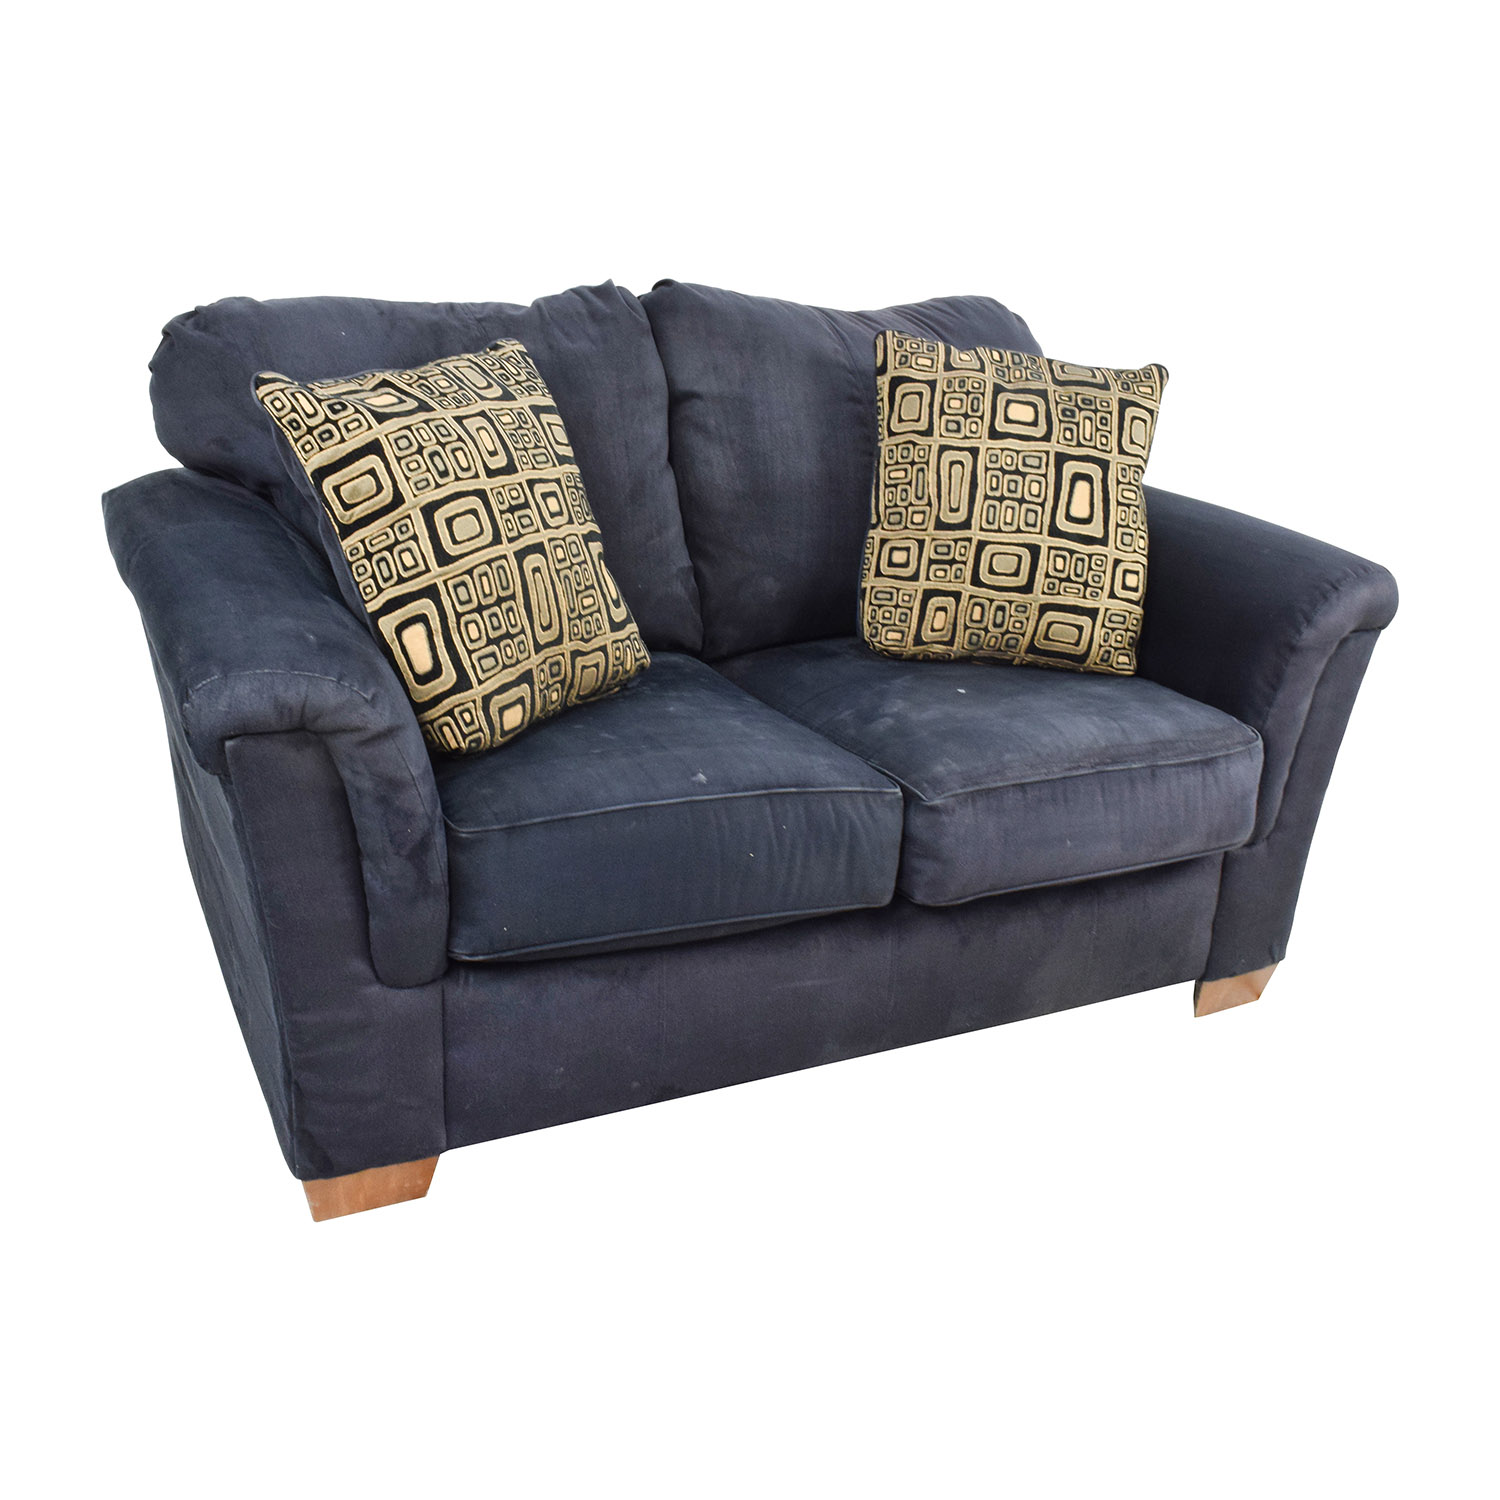 Merveilleux ... Ashley Furniture Ashley Furniture Janley Loveseat ...